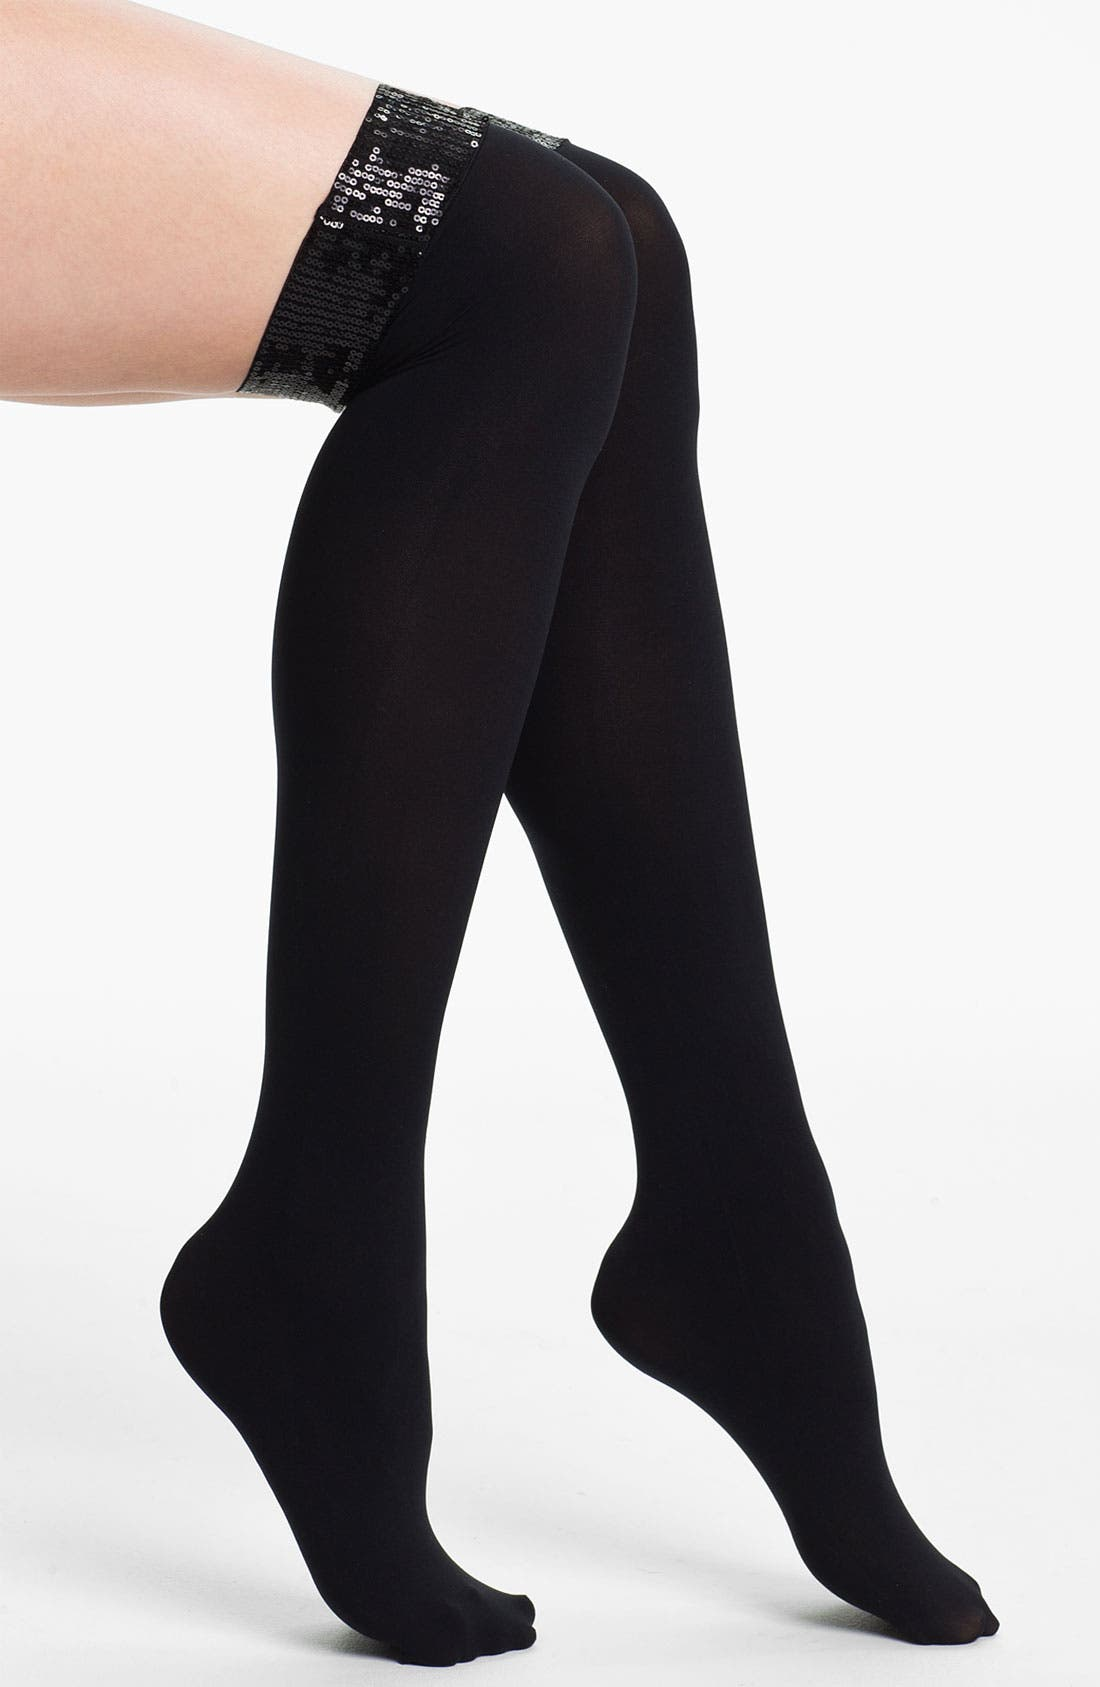 Main Image - DKNY Sequined Over the Knee Socks